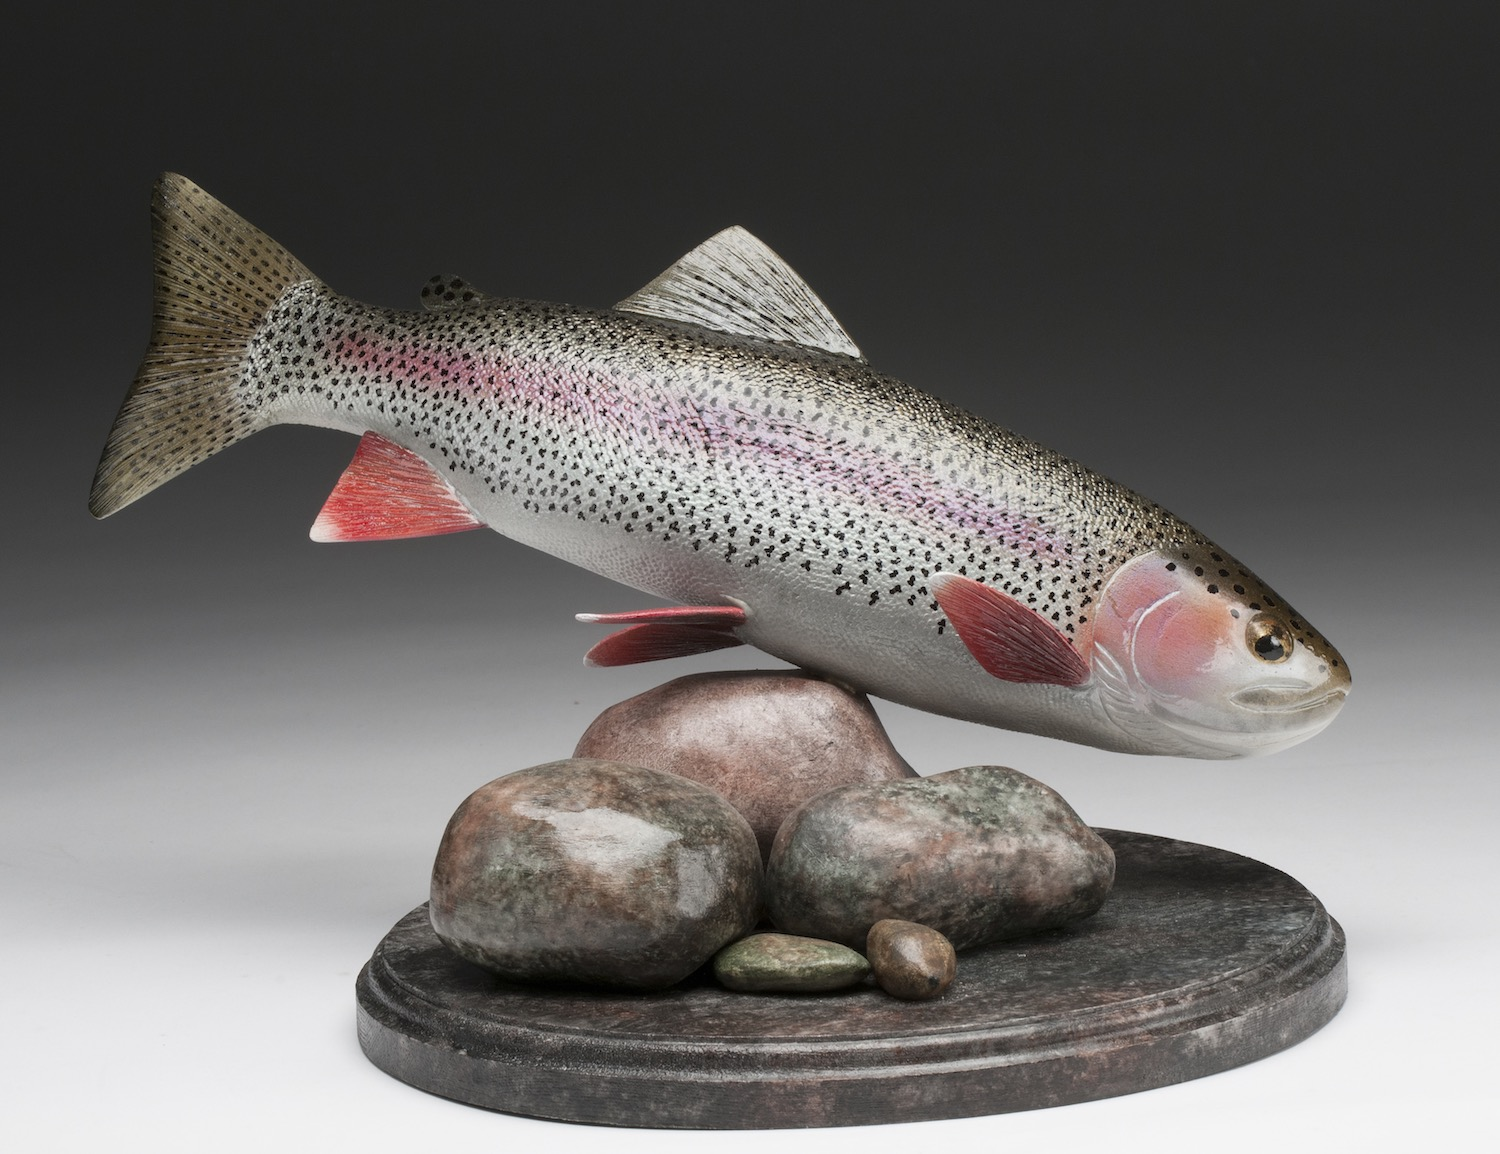 2018 Open 1st Best of Show - Dale Kotowsky - rainbow trout